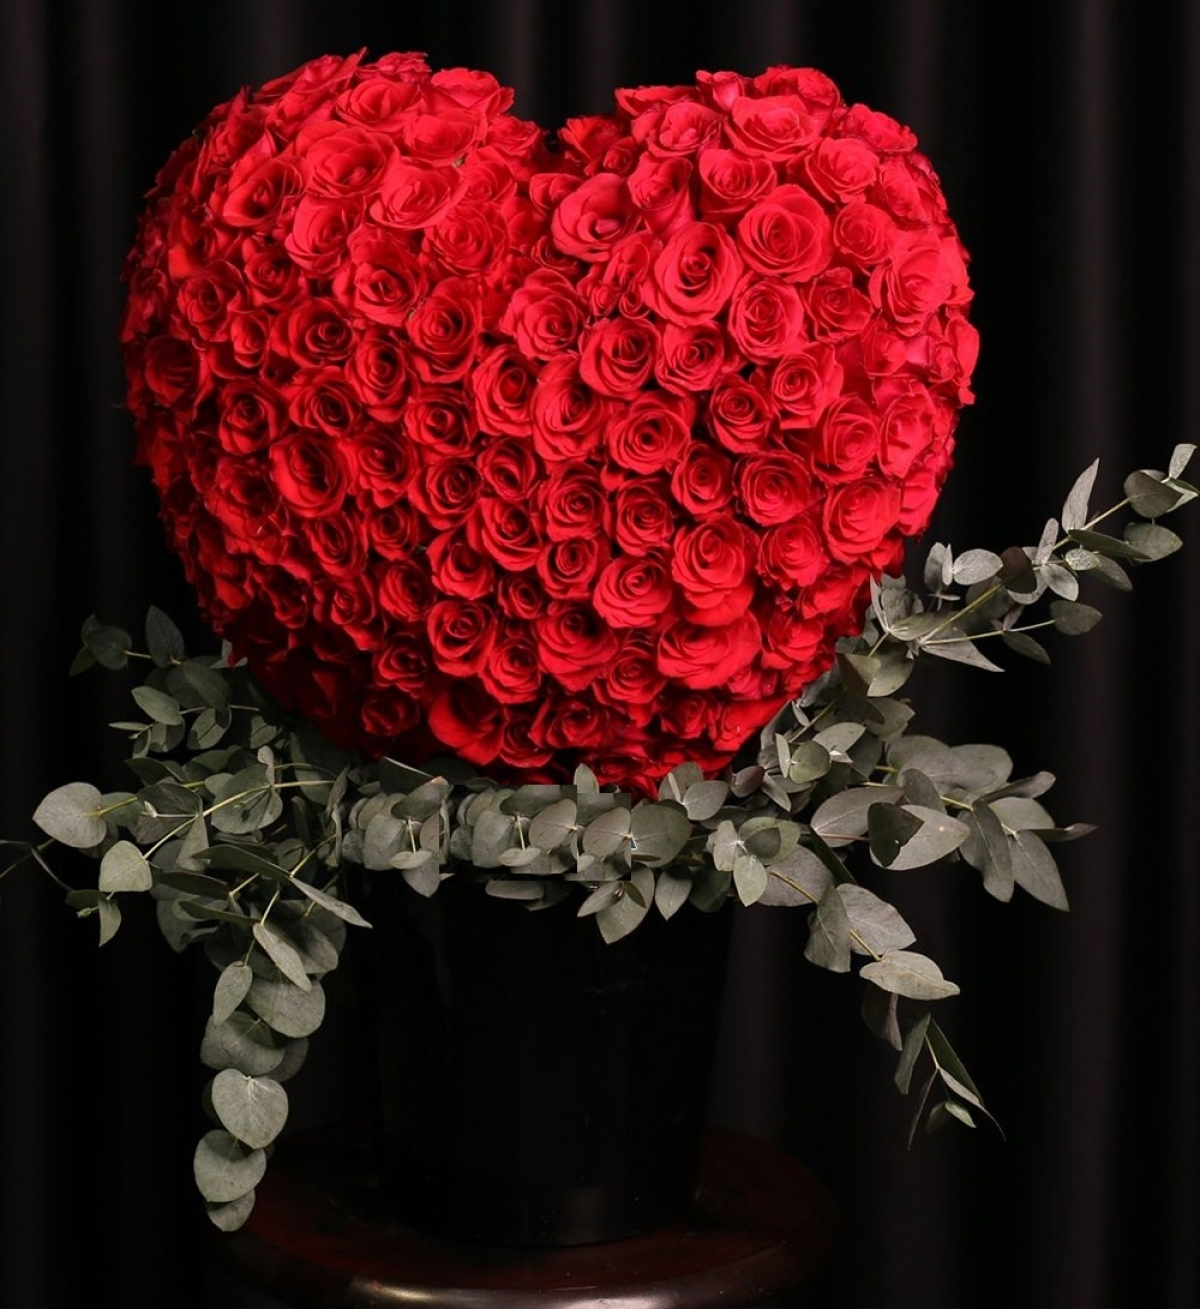 A bouquet of roses can be used to send a special message to loved ones.